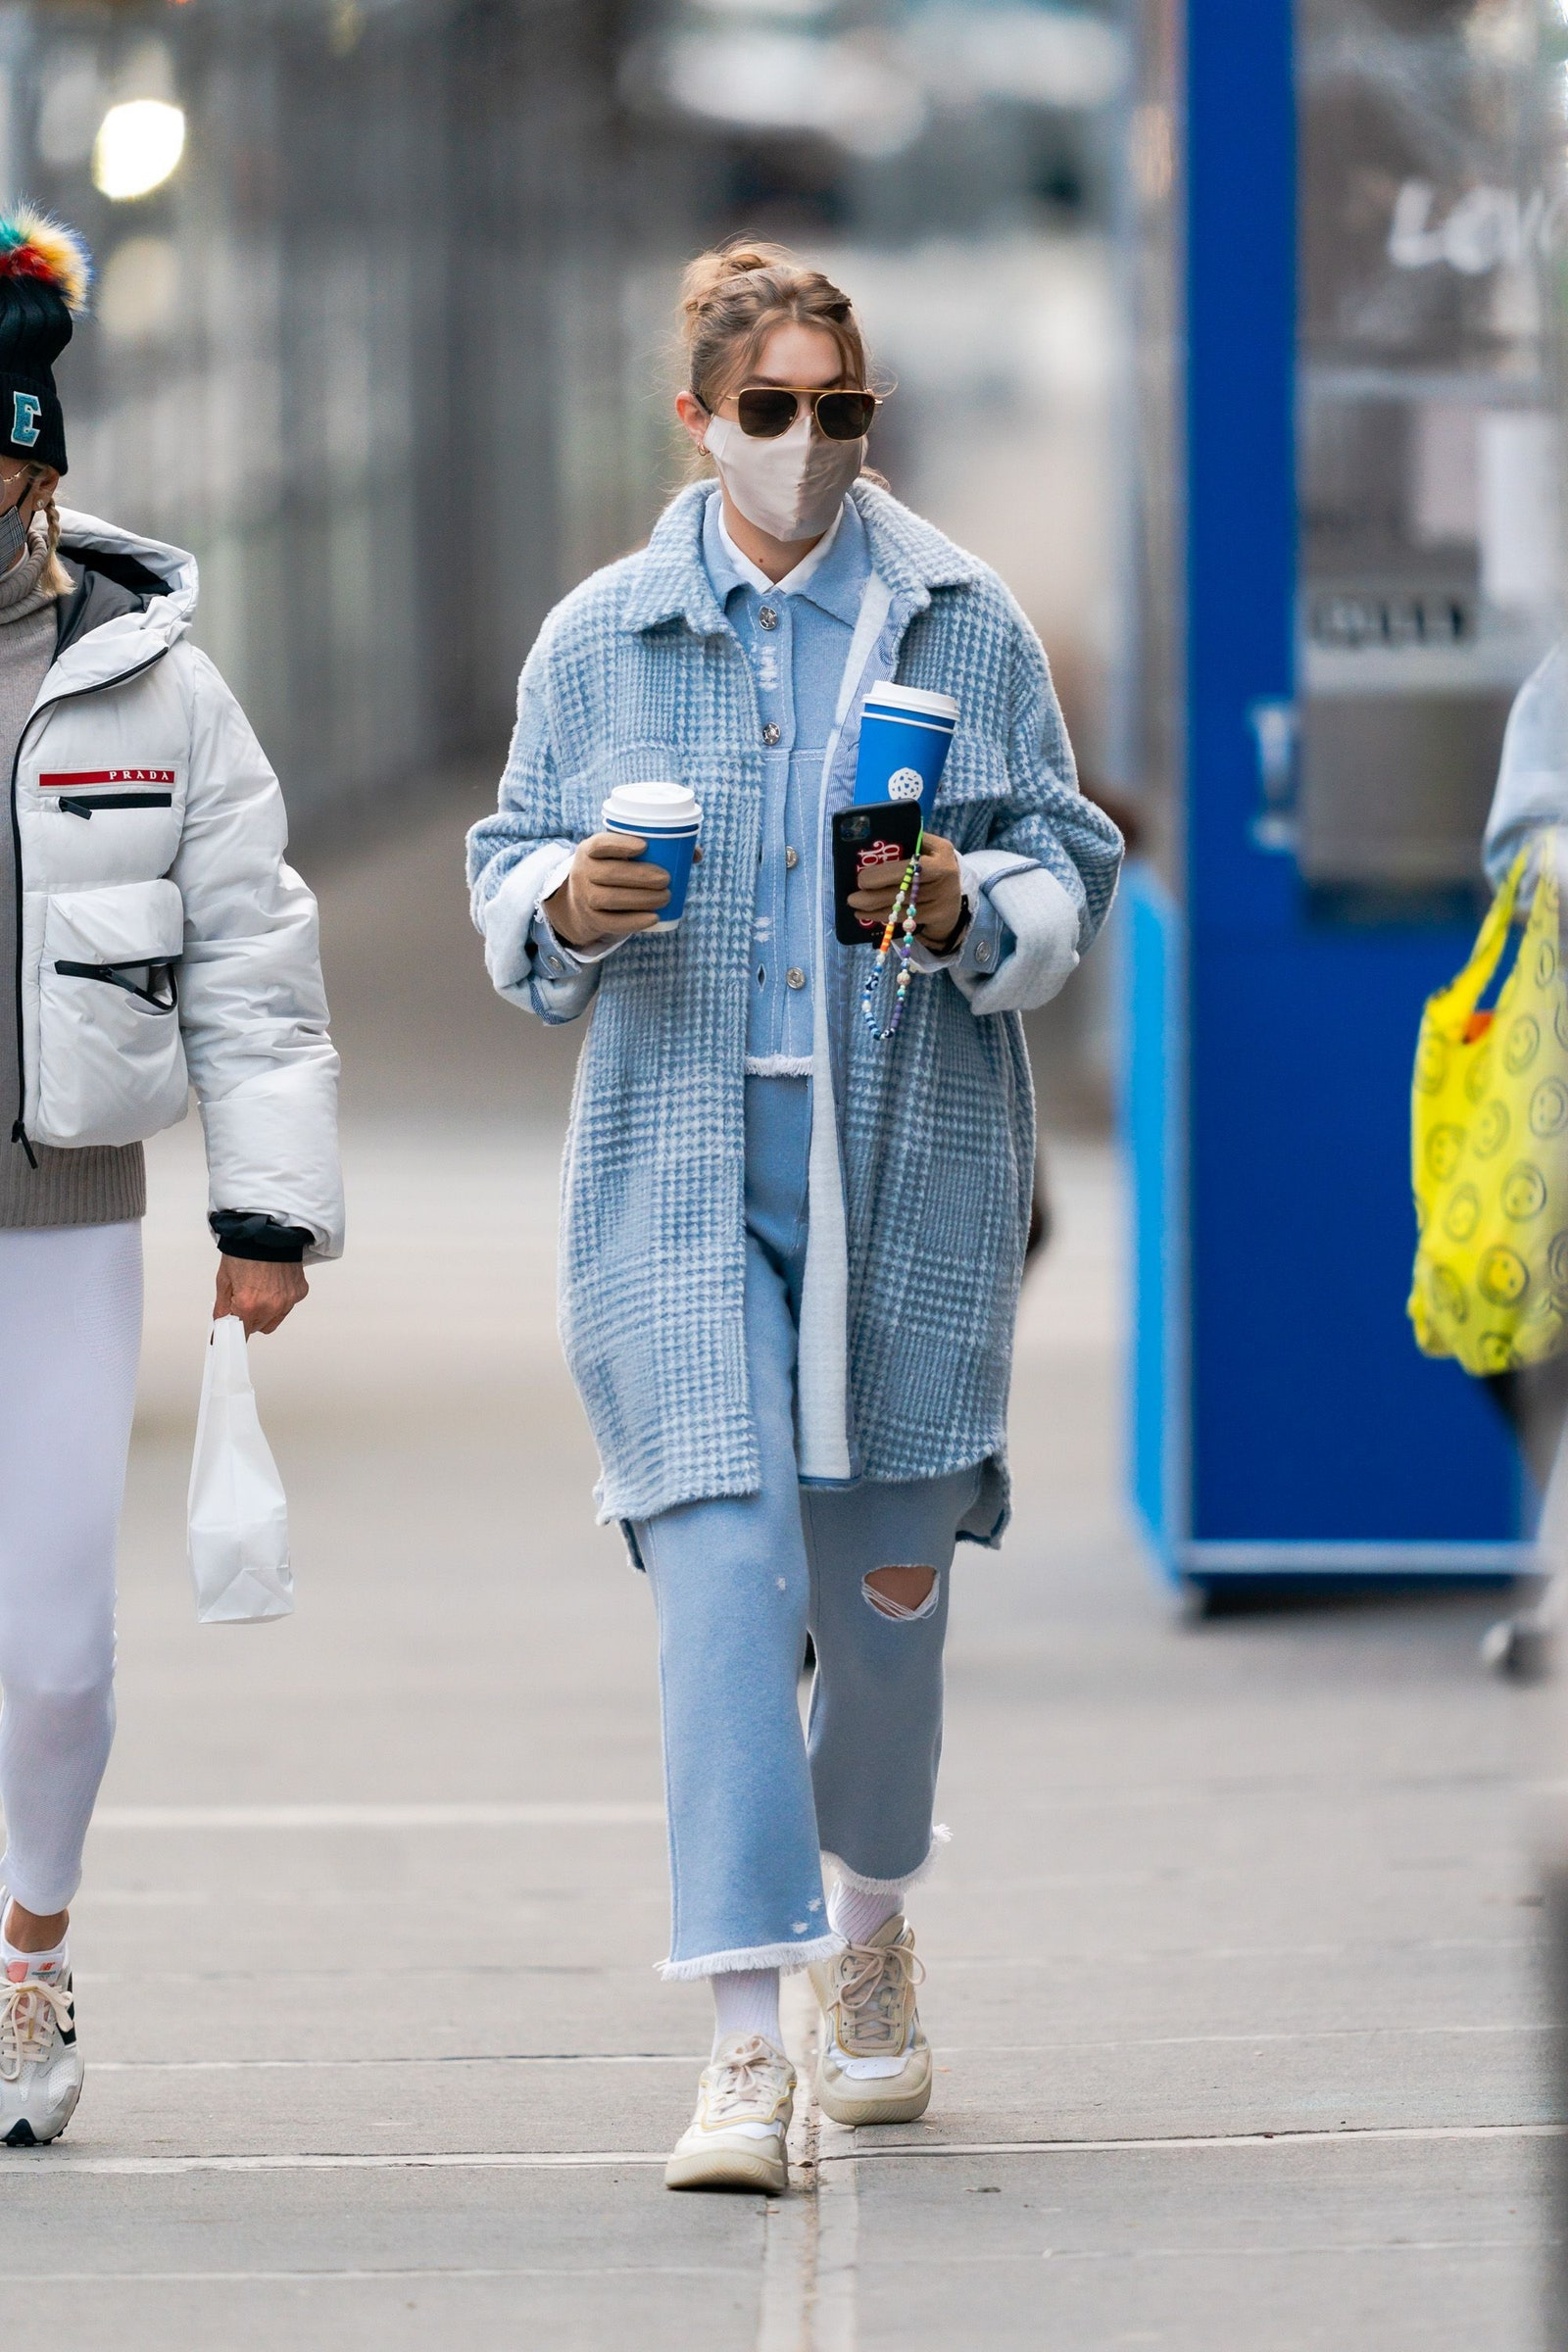 Gigi Hadid is seen in NoHo on January 13 2021 in New York City.nbsp